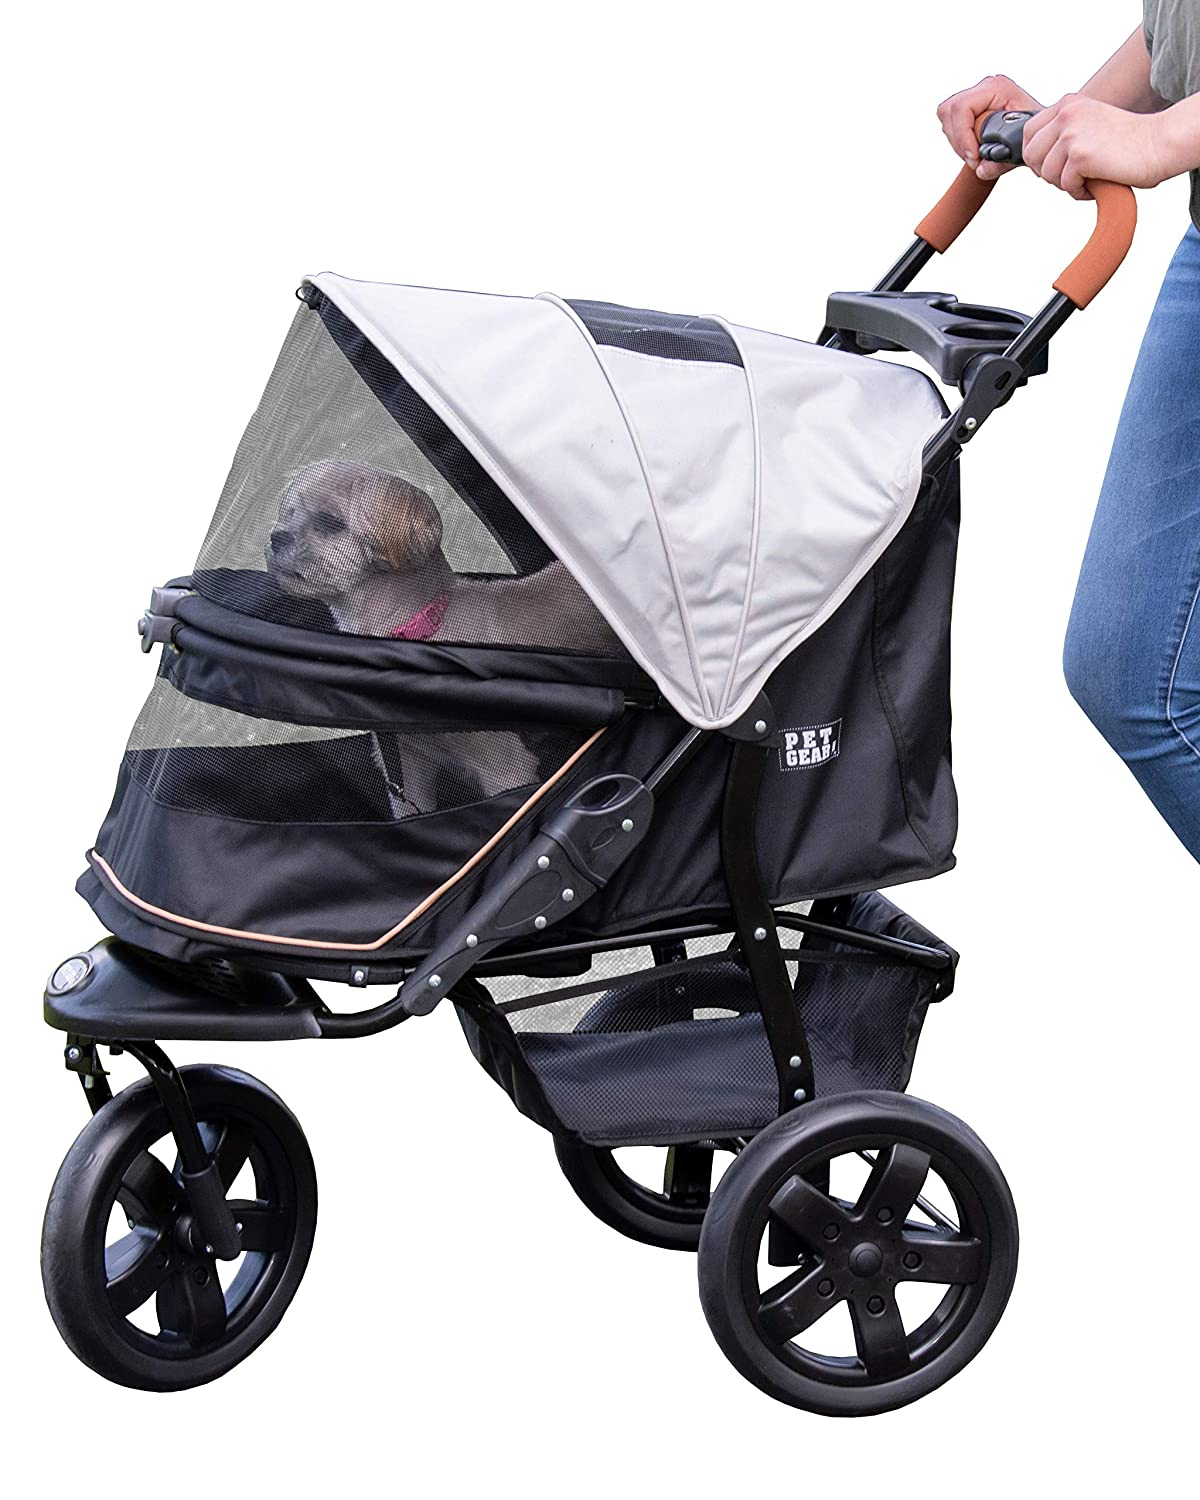 7 Best Dog strollers for Small, Medium and Large Dogs 5